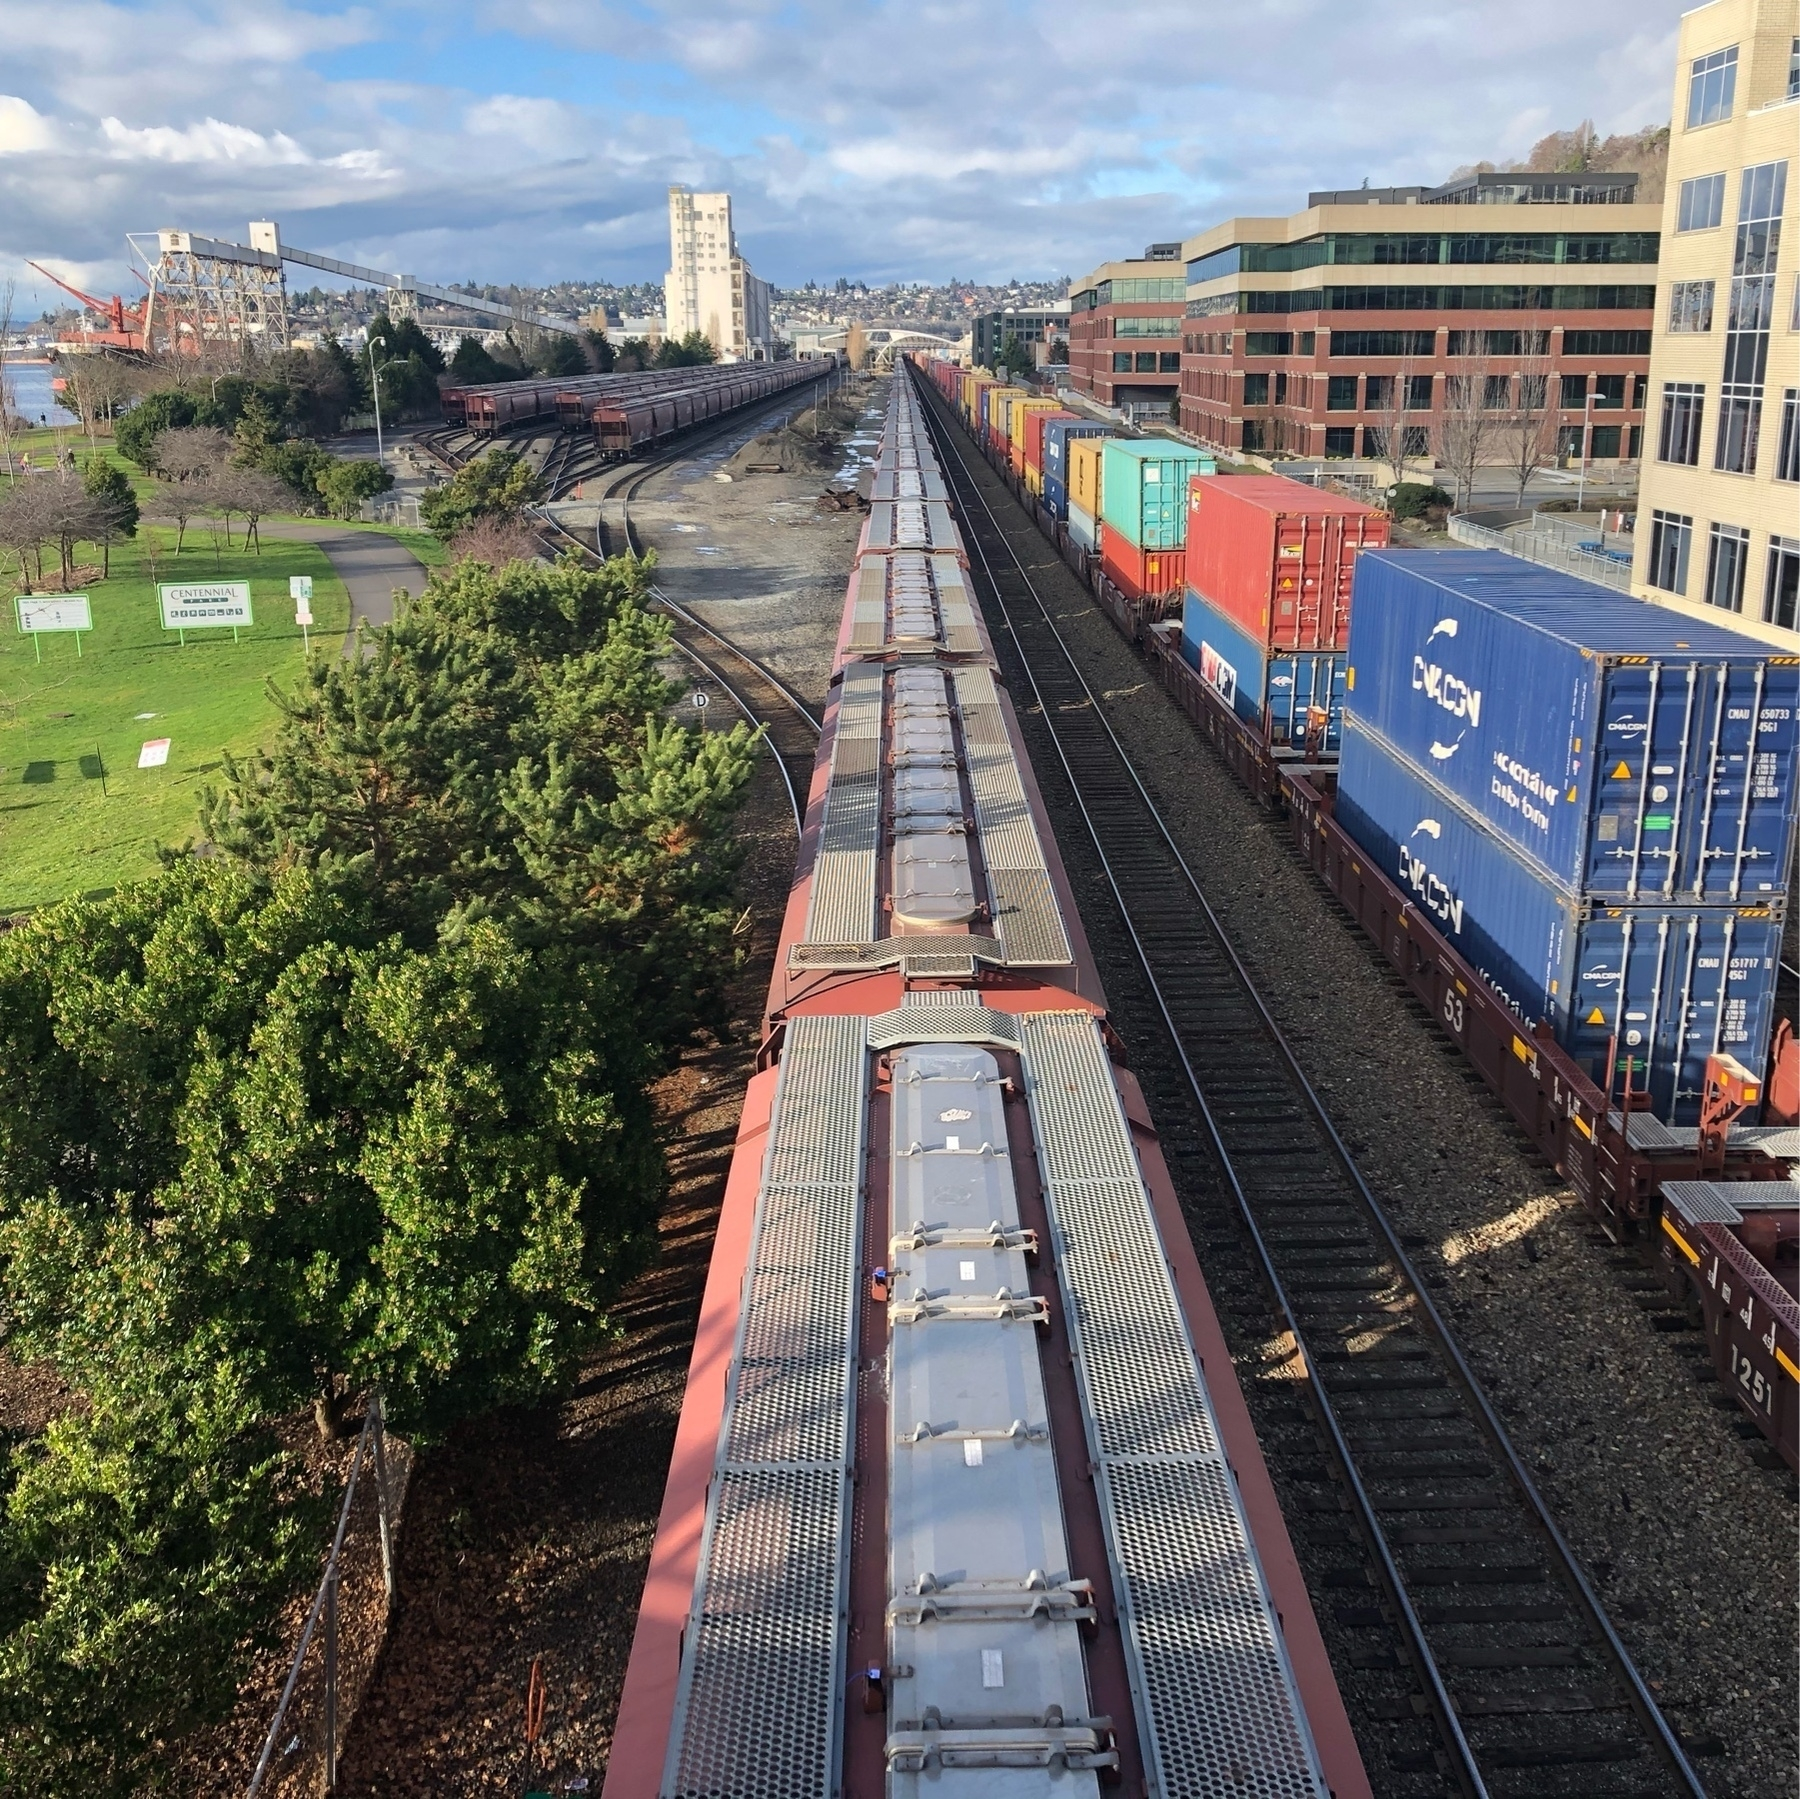 Two cargo trains on the tracks alongside a waterfront park in Seattle.